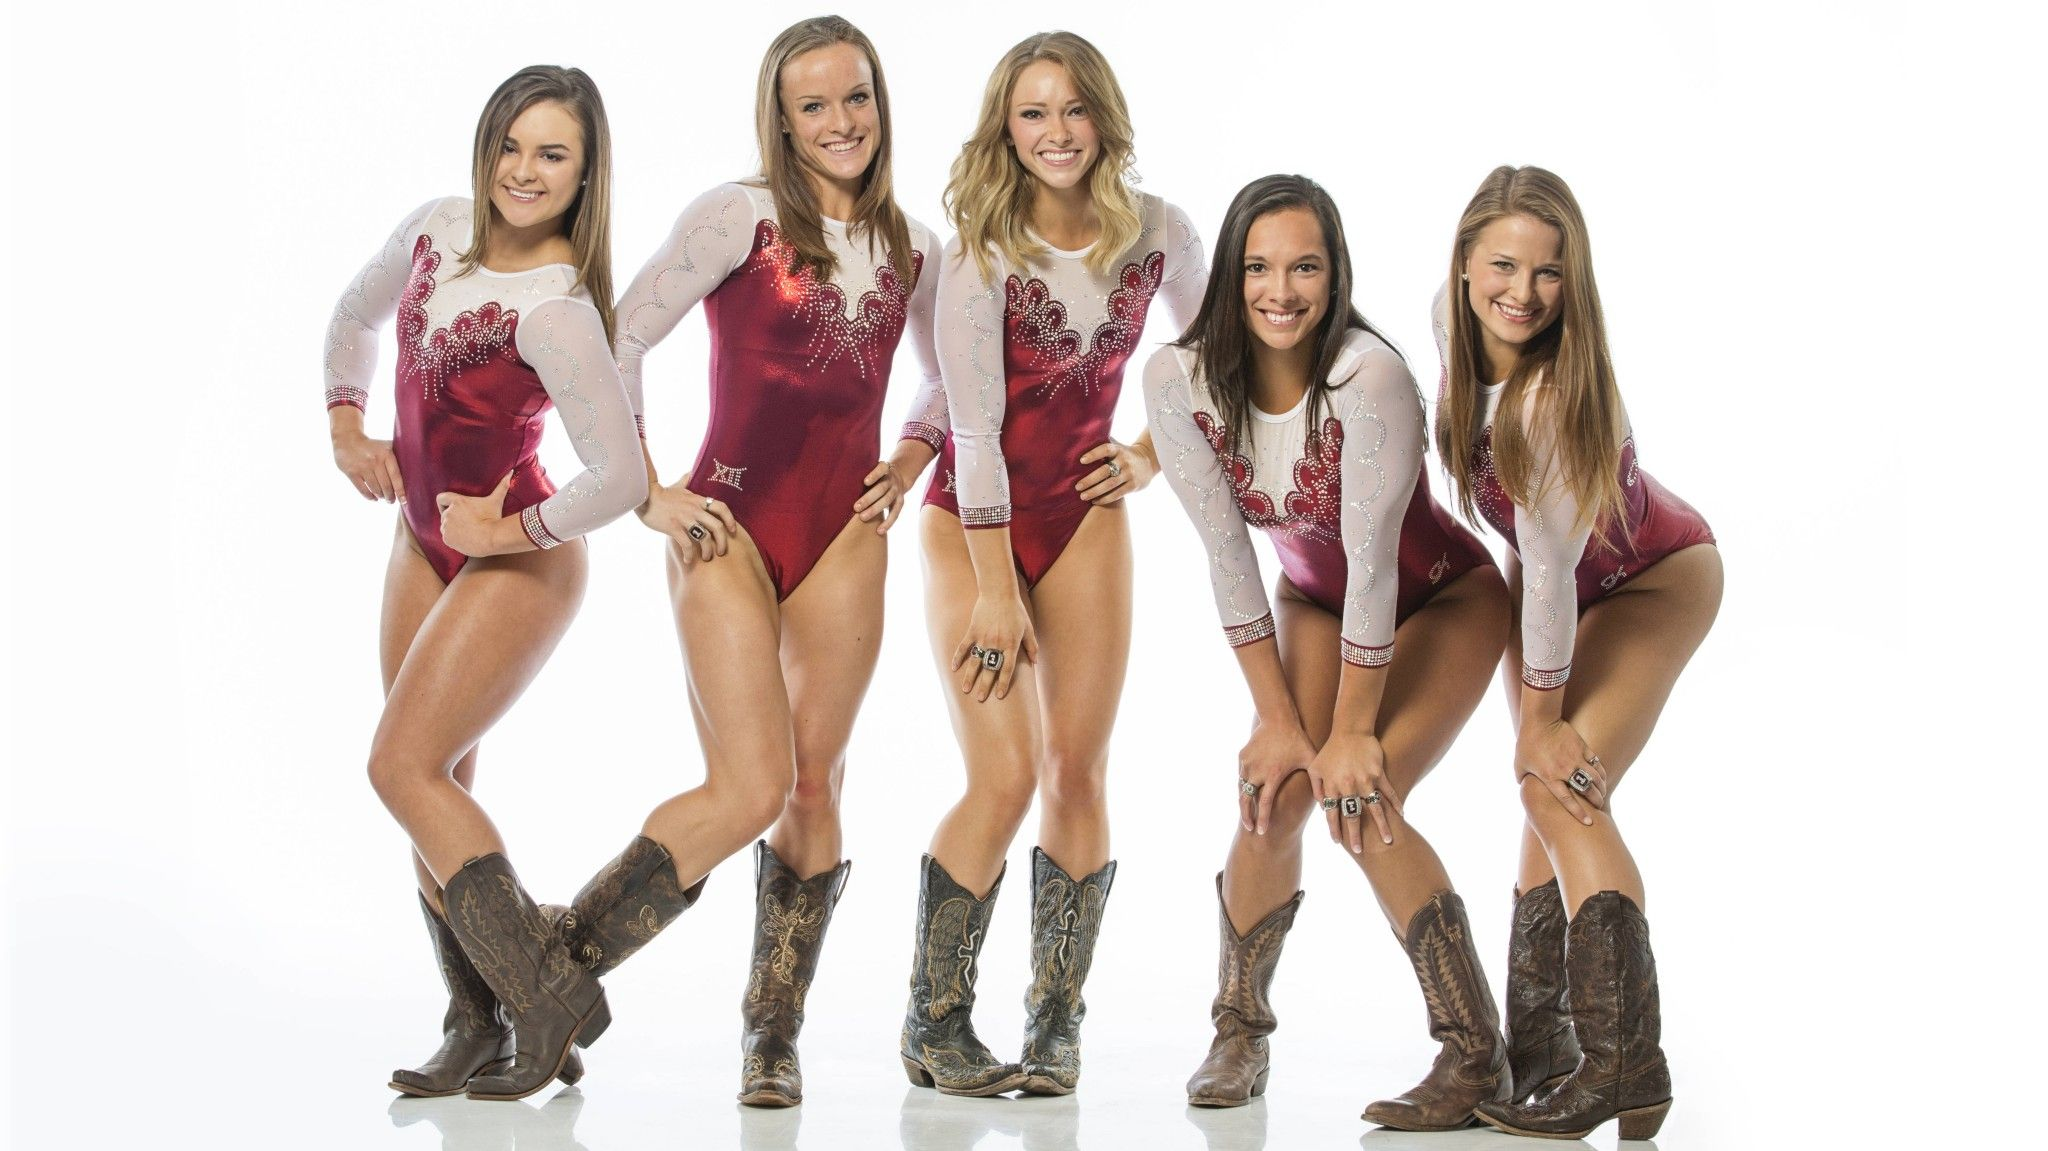 d4227144925 Oklahoma Sooners' NCAA women's gymnastics team 2016 | USA Gymnastics ...